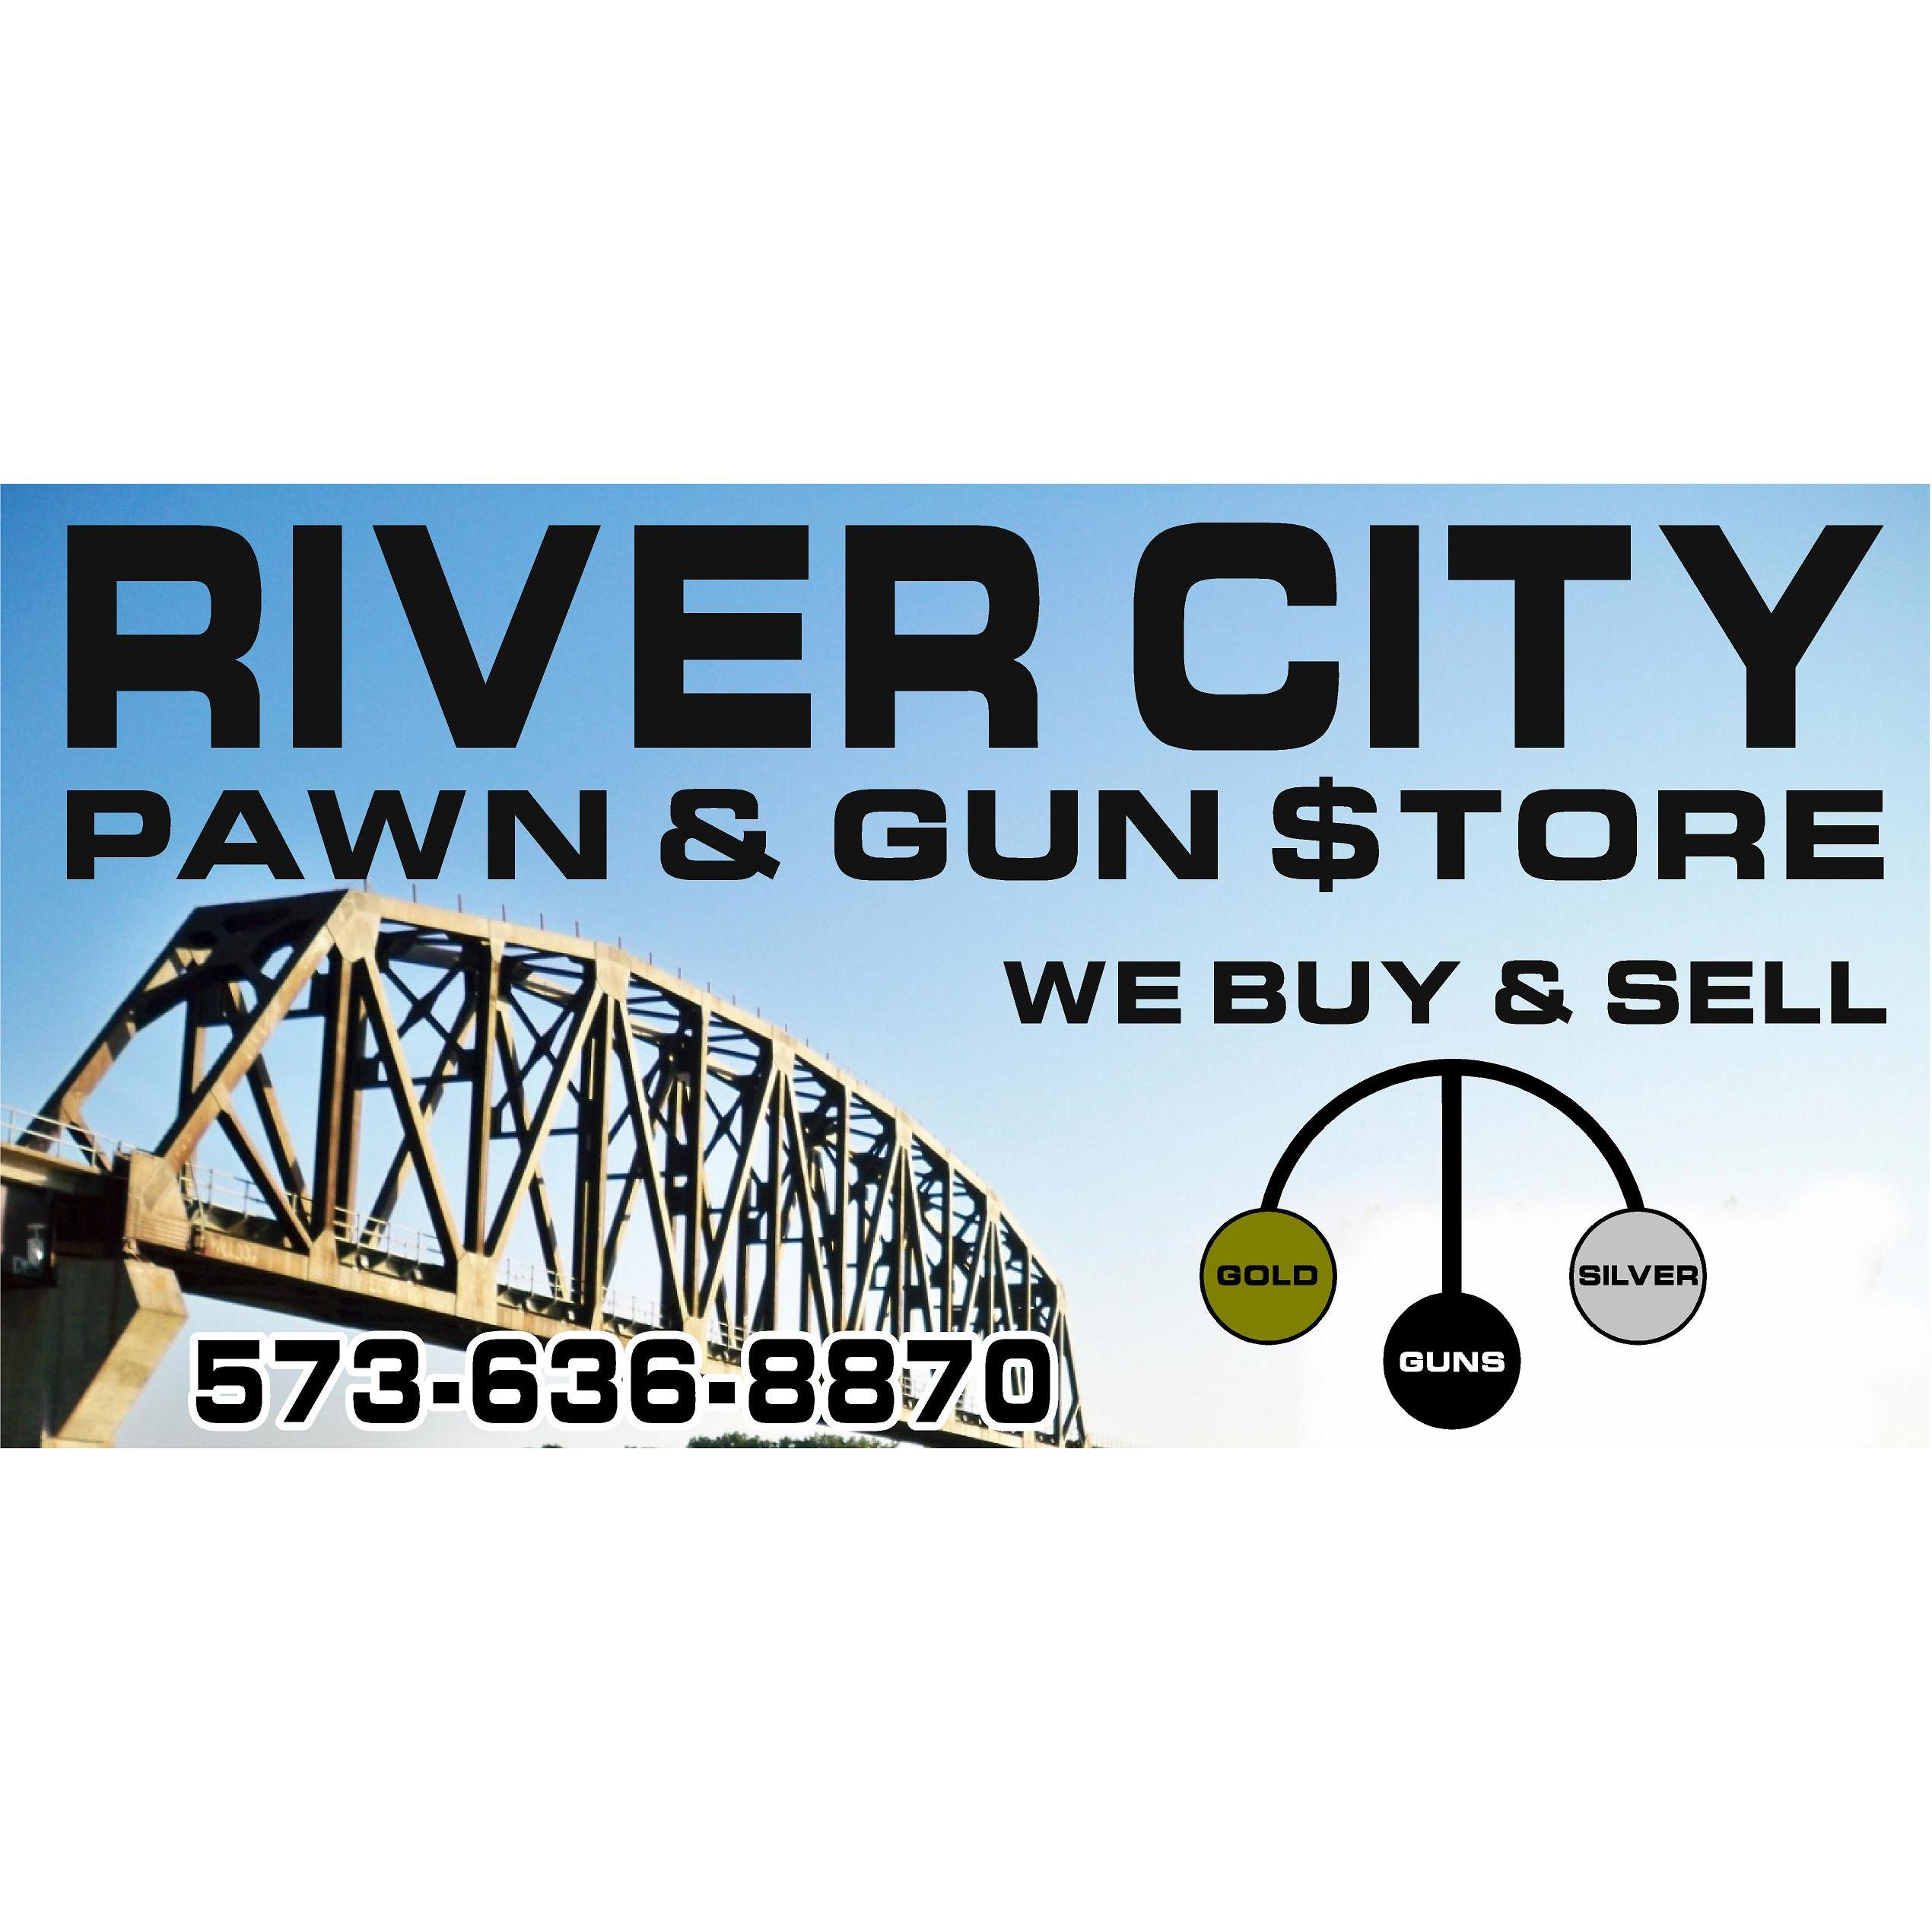 River City Pawn and Gun Store